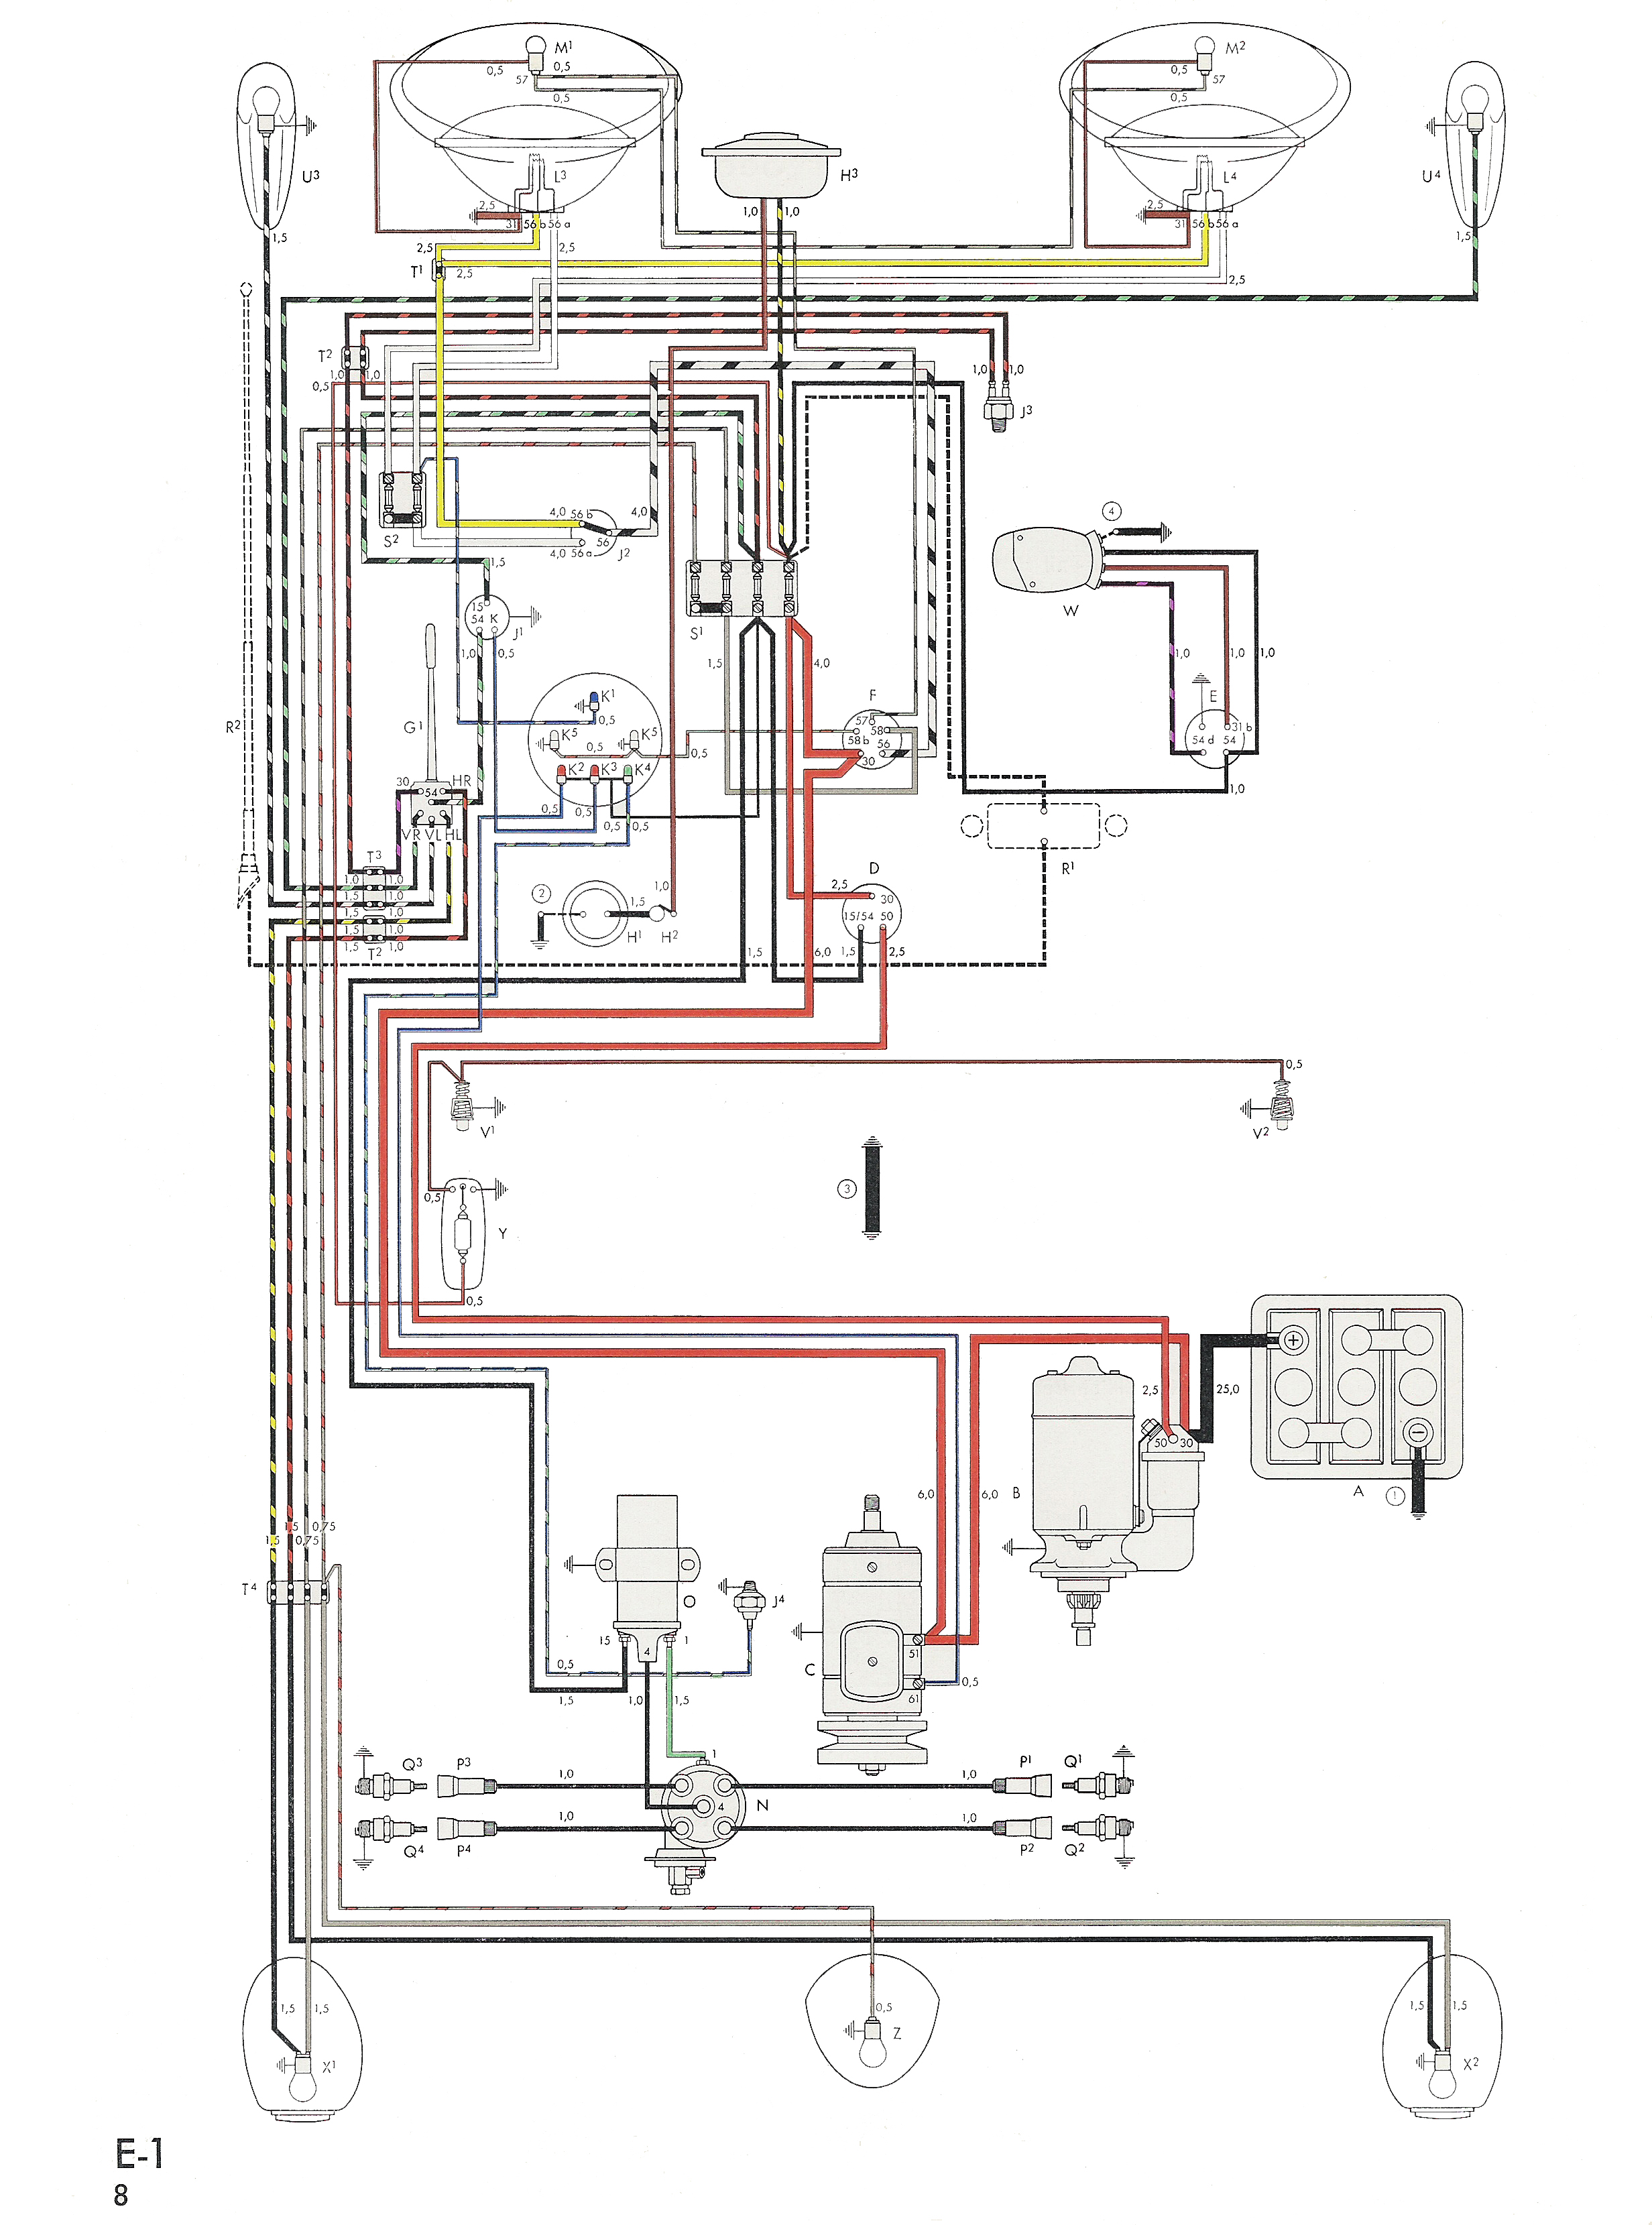 thesamba com type 1 wiring diagrams rh thesamba com vw bug wiring schematic VW Beetle Wiring Diagram